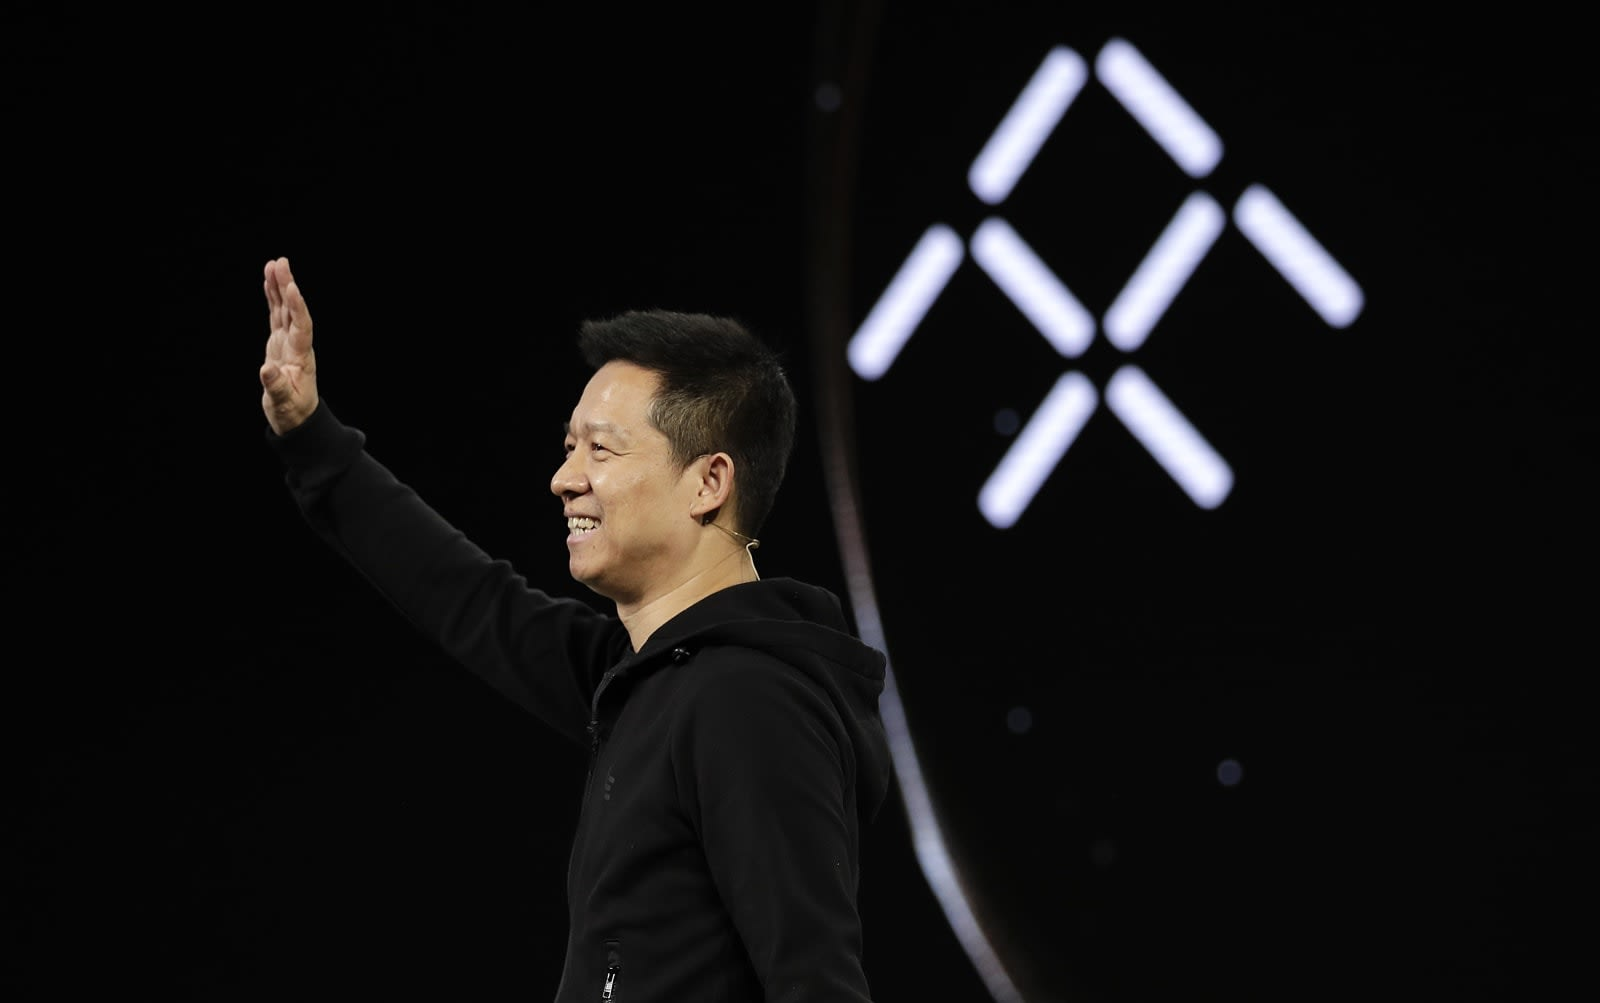 Faraday Future founder files for Chapter 11 bankruptcy